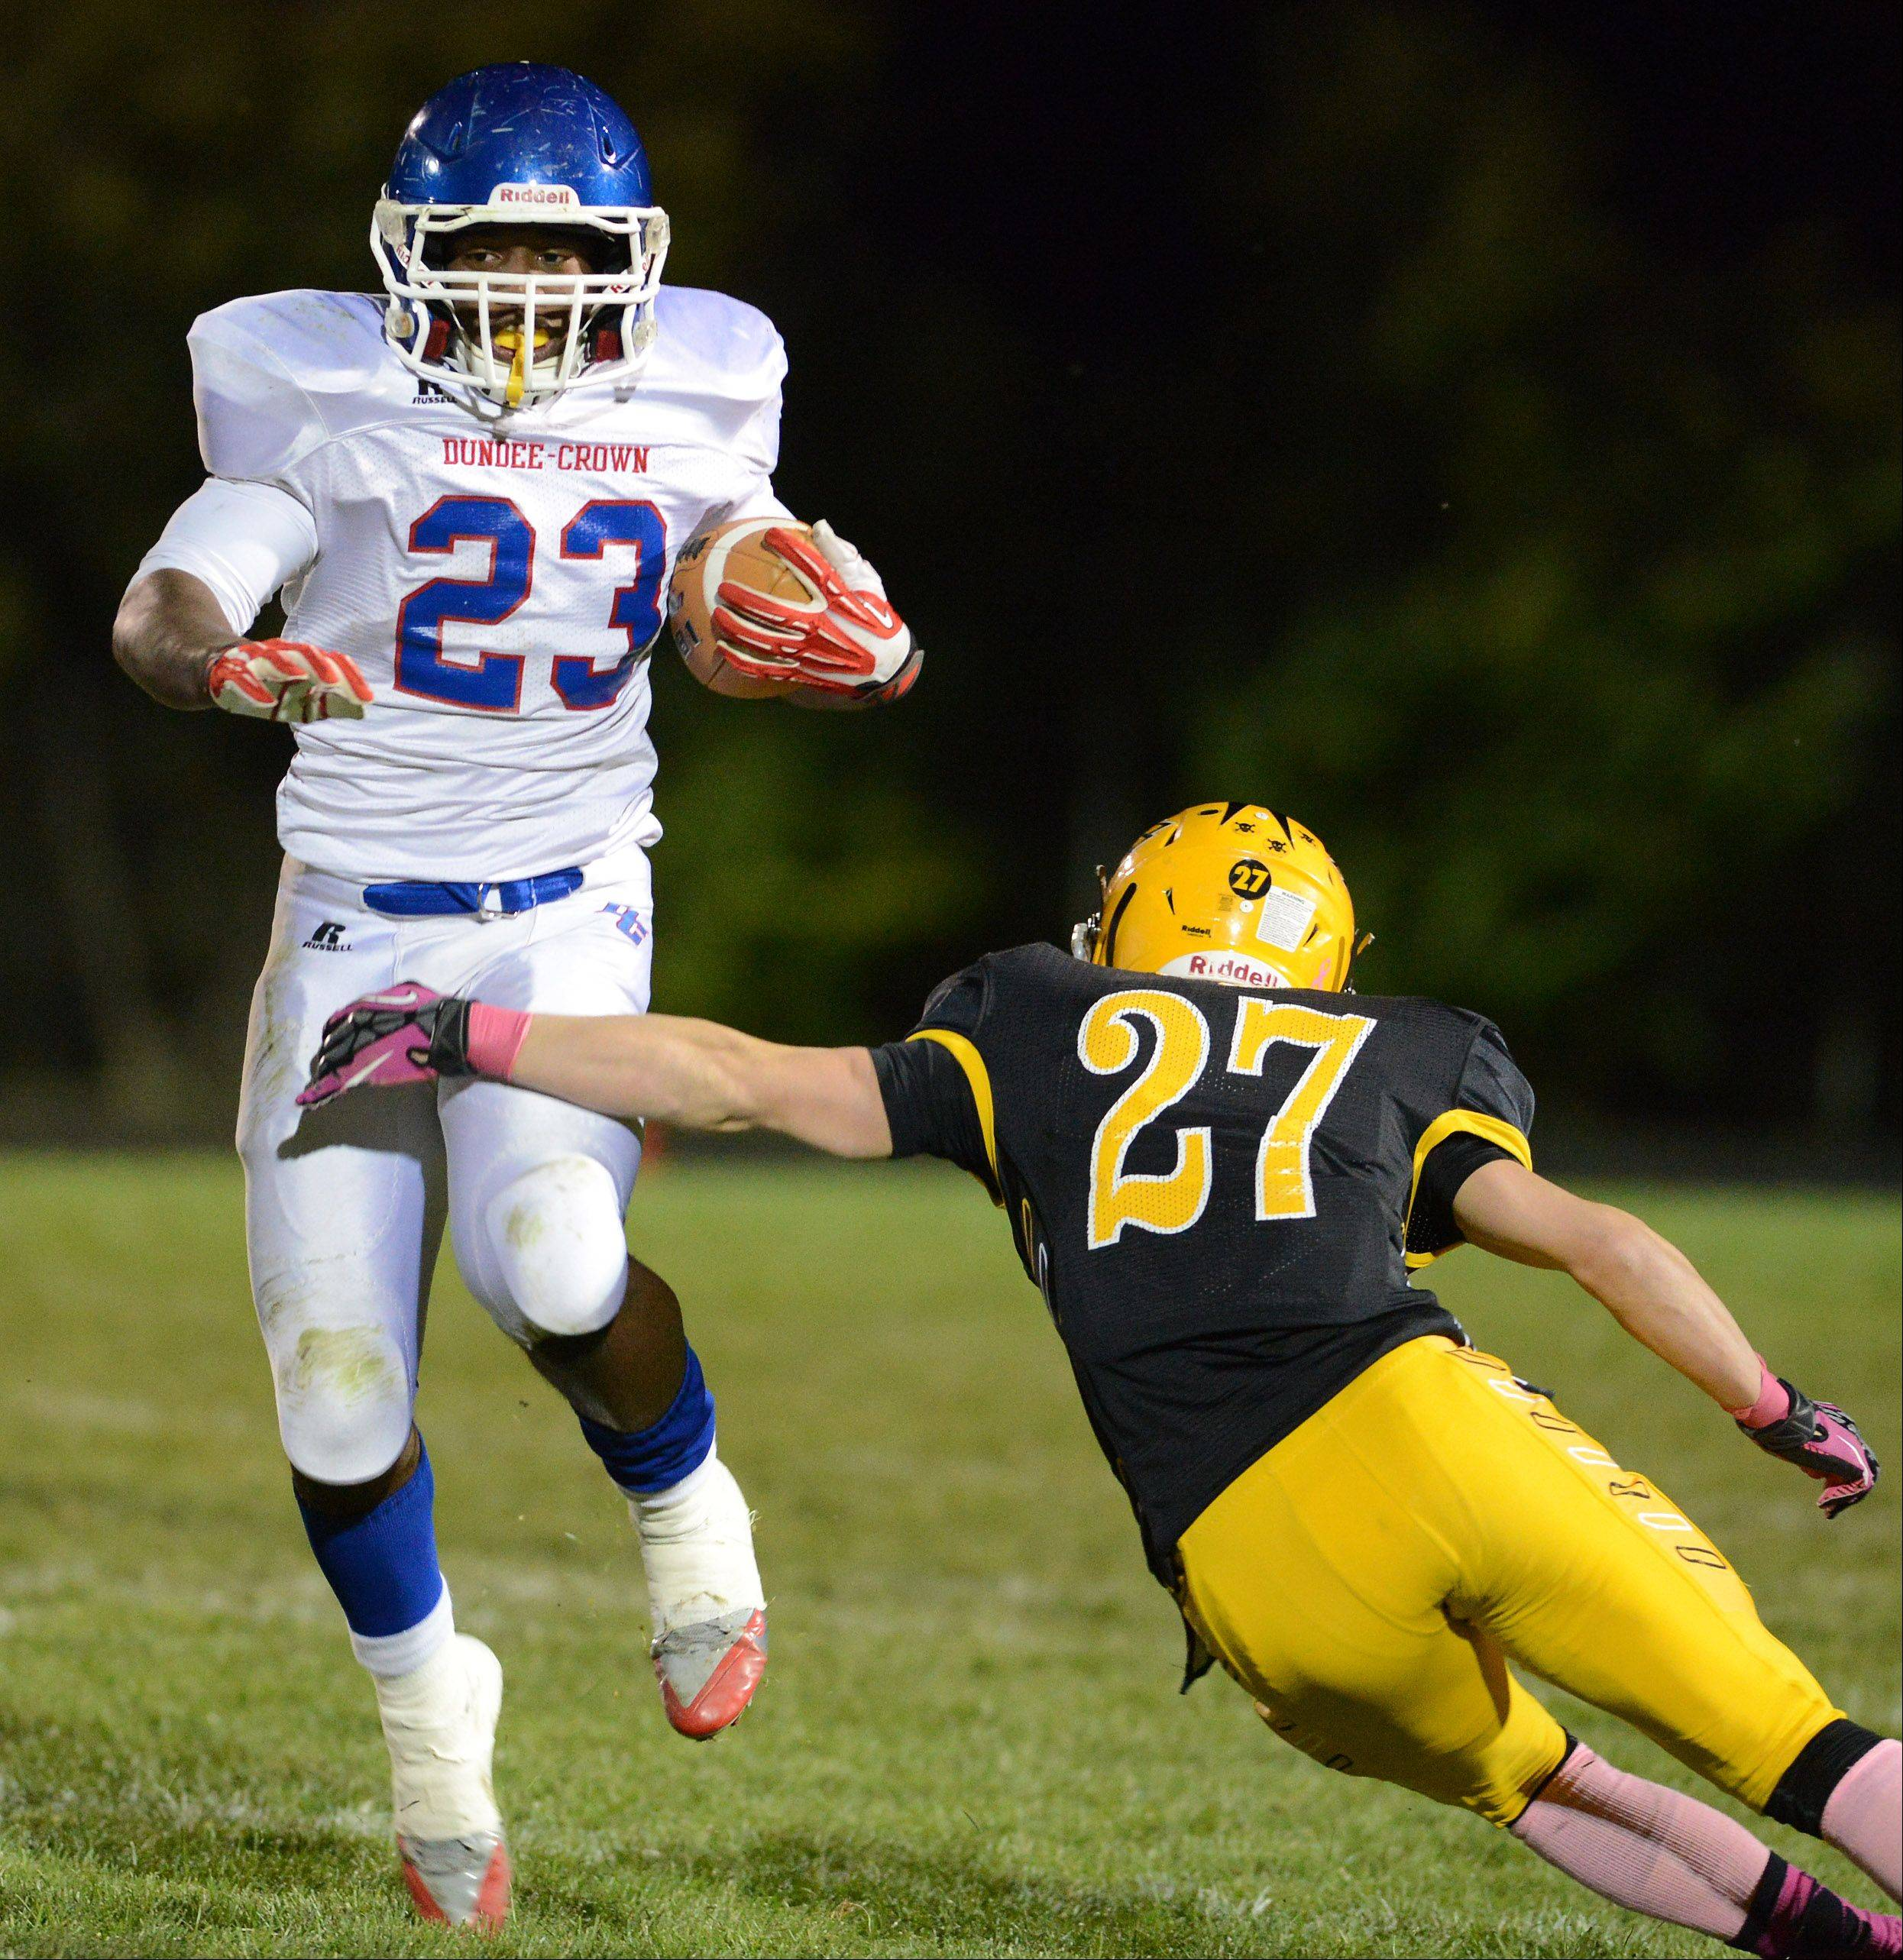 Dundee-Crown's Cordero Parson (23) sidesteps Jacobs' Josh Narvaez (27) on a third-quarter run during Friday's game in Algonquin. Dundee-Crown hits the road to Oak Park-River Forest for the first round of the Class 8A playoffs, while Jacobs will host Conant in Class 7A.